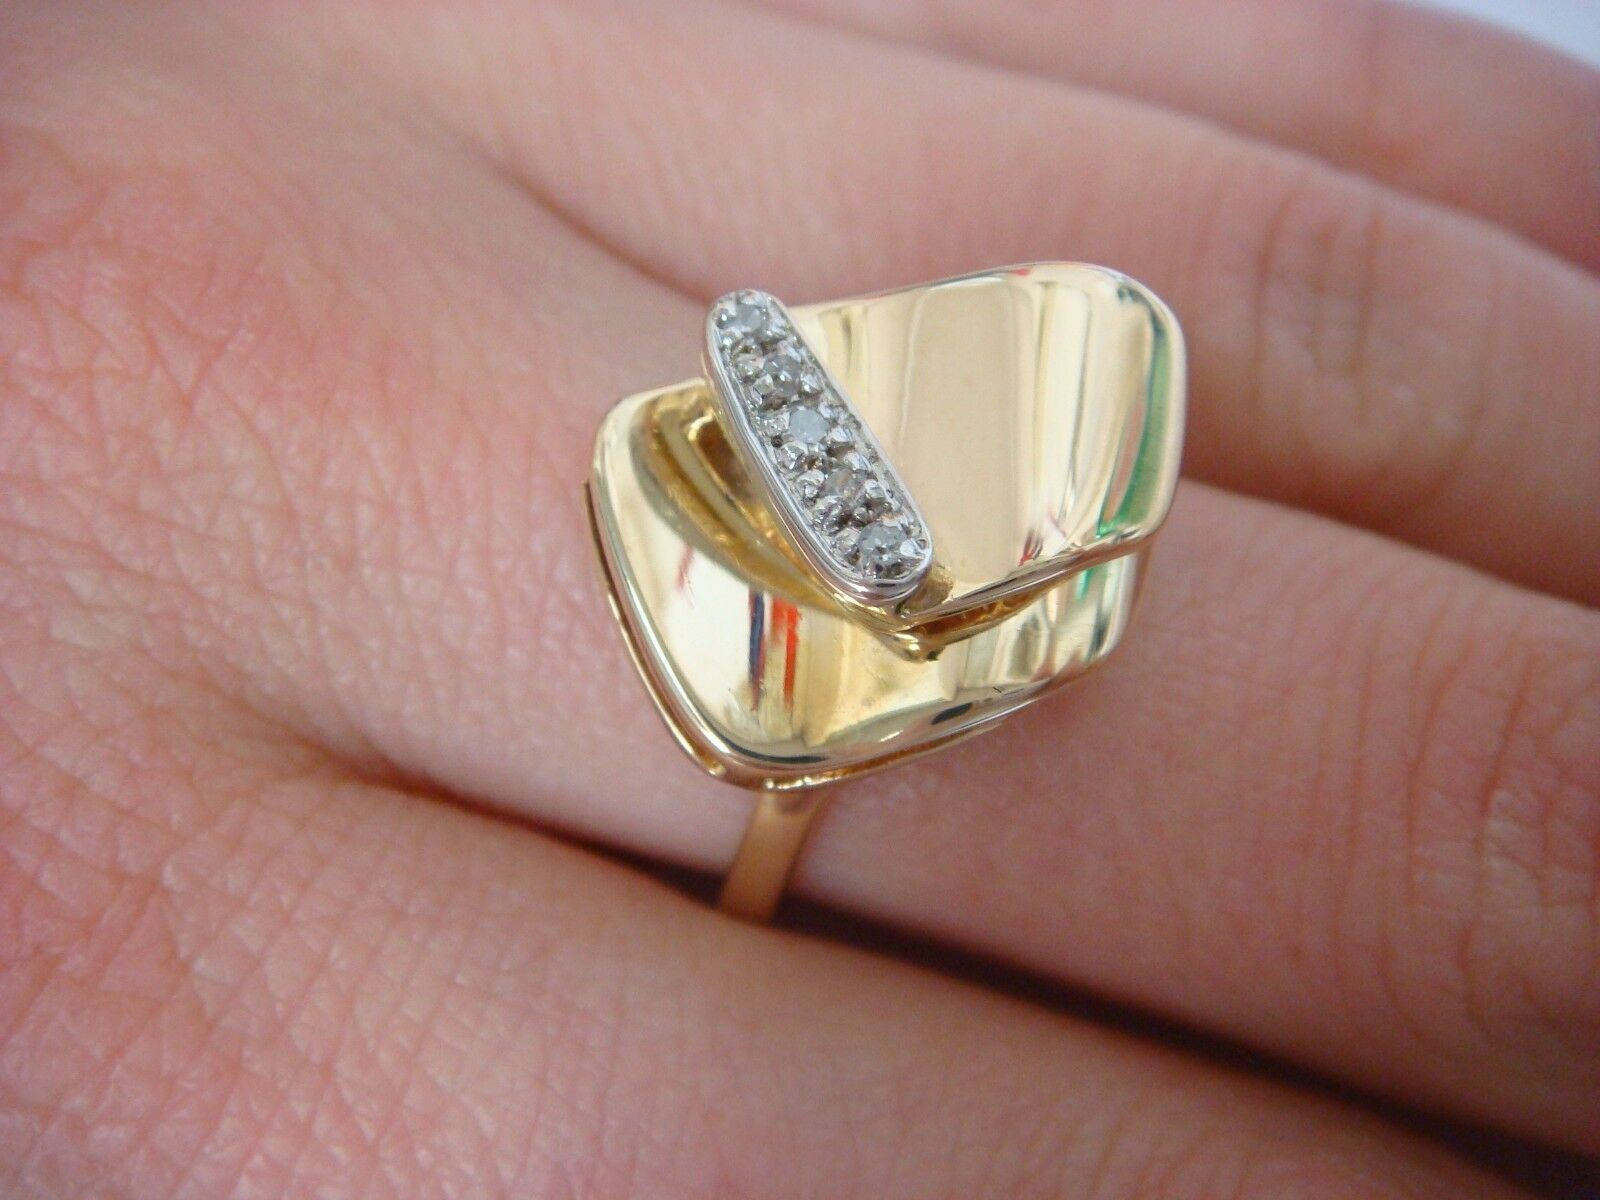 BEAUTIFUL 14K YELLOW gold AND GENUINE DIAMONDS FREE STYLE VINTAGE LADIES RING